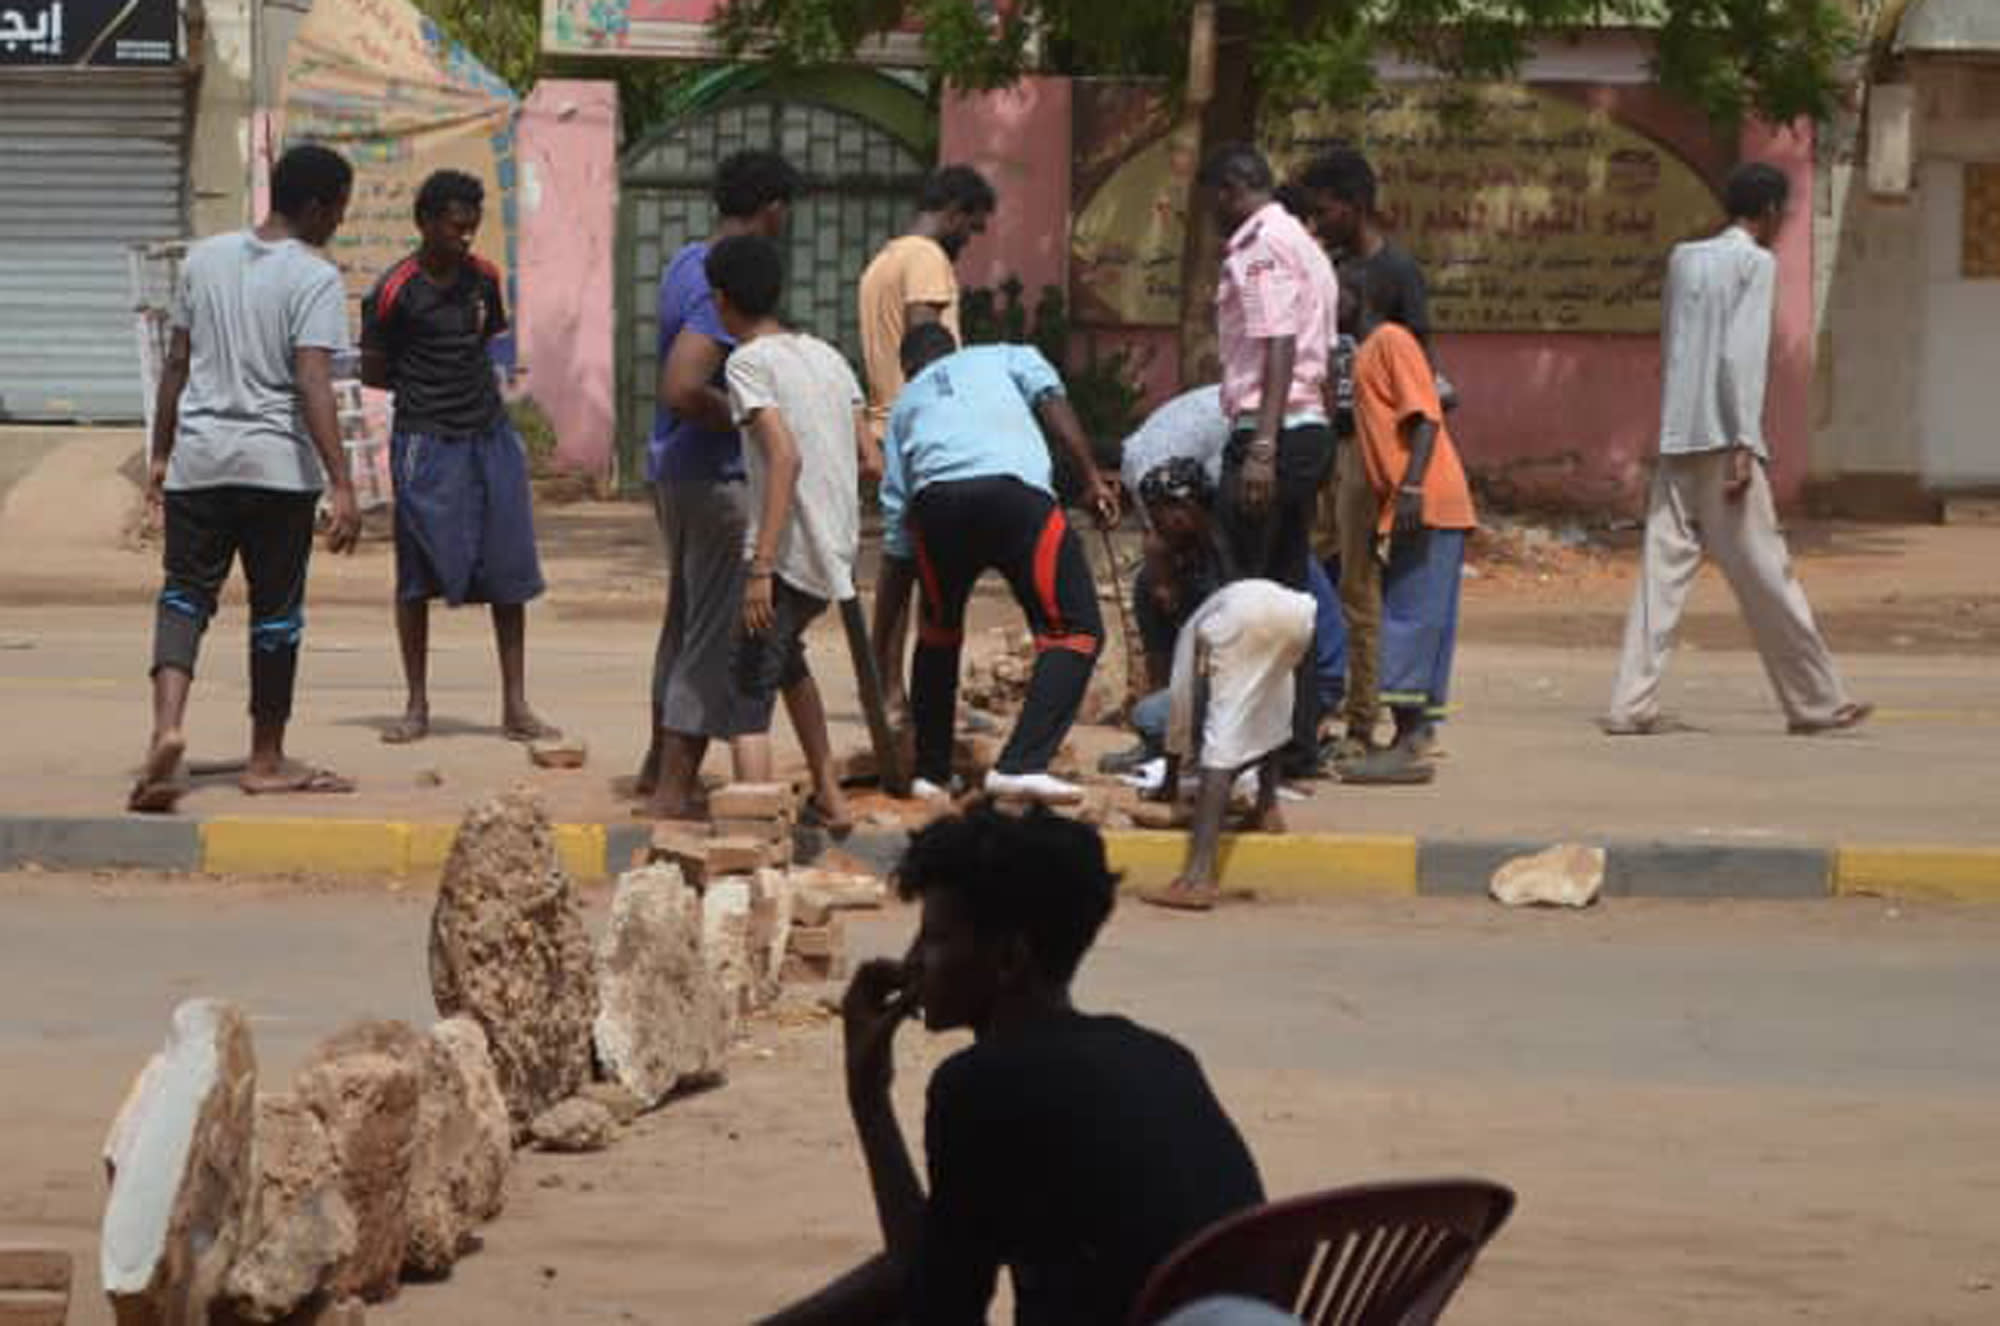 Bricks are laid by protesters to block a street in the Sudanese capital Khartoum to stop military vehicles from driving through the area on Wednesday, June 5, 2019. The death toll in Sudan amid a violent crackdown on pro-democracy protesters and the dispersal of their peaceful sit-in earlier this week in the capital climbed on Wednesday, protest organizers said. (Mohammed Najib via AP)